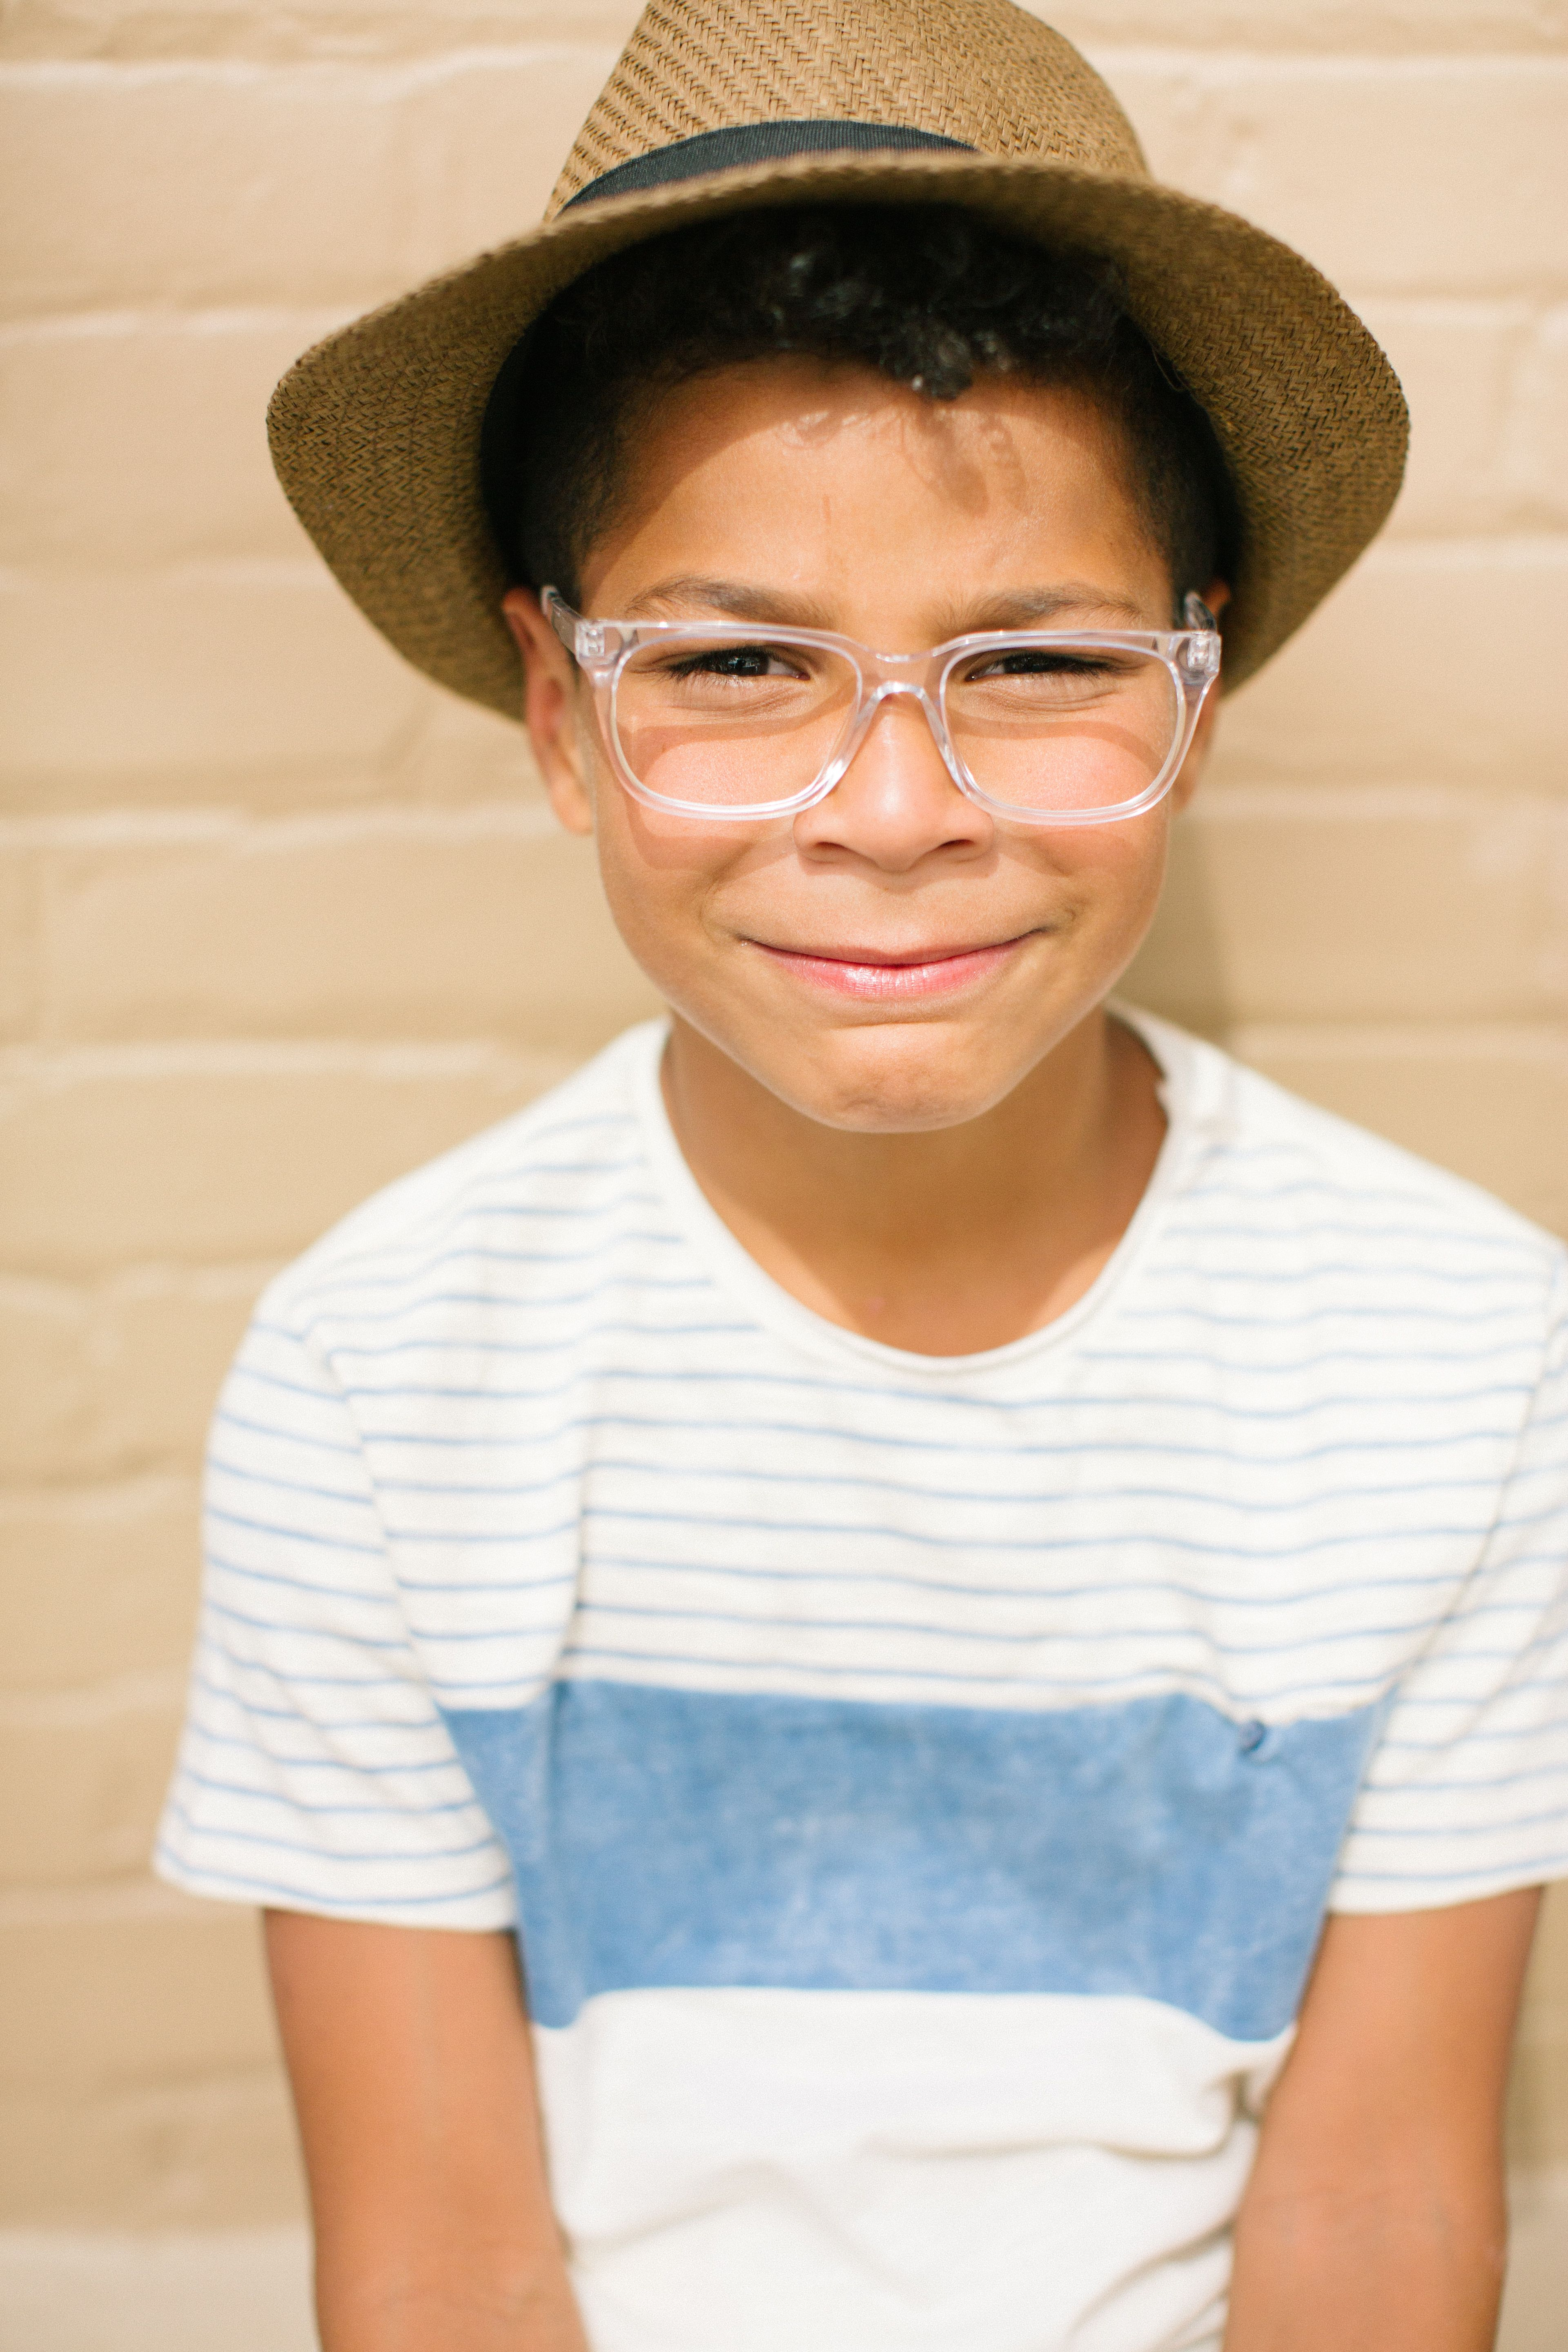 0440c3d0c65c Boys Eyeglass Frames // Jonas Paul Eyewear // Our Jonas children's glasses  frames are offered in classic color options to coordinate with your little  guy's ...